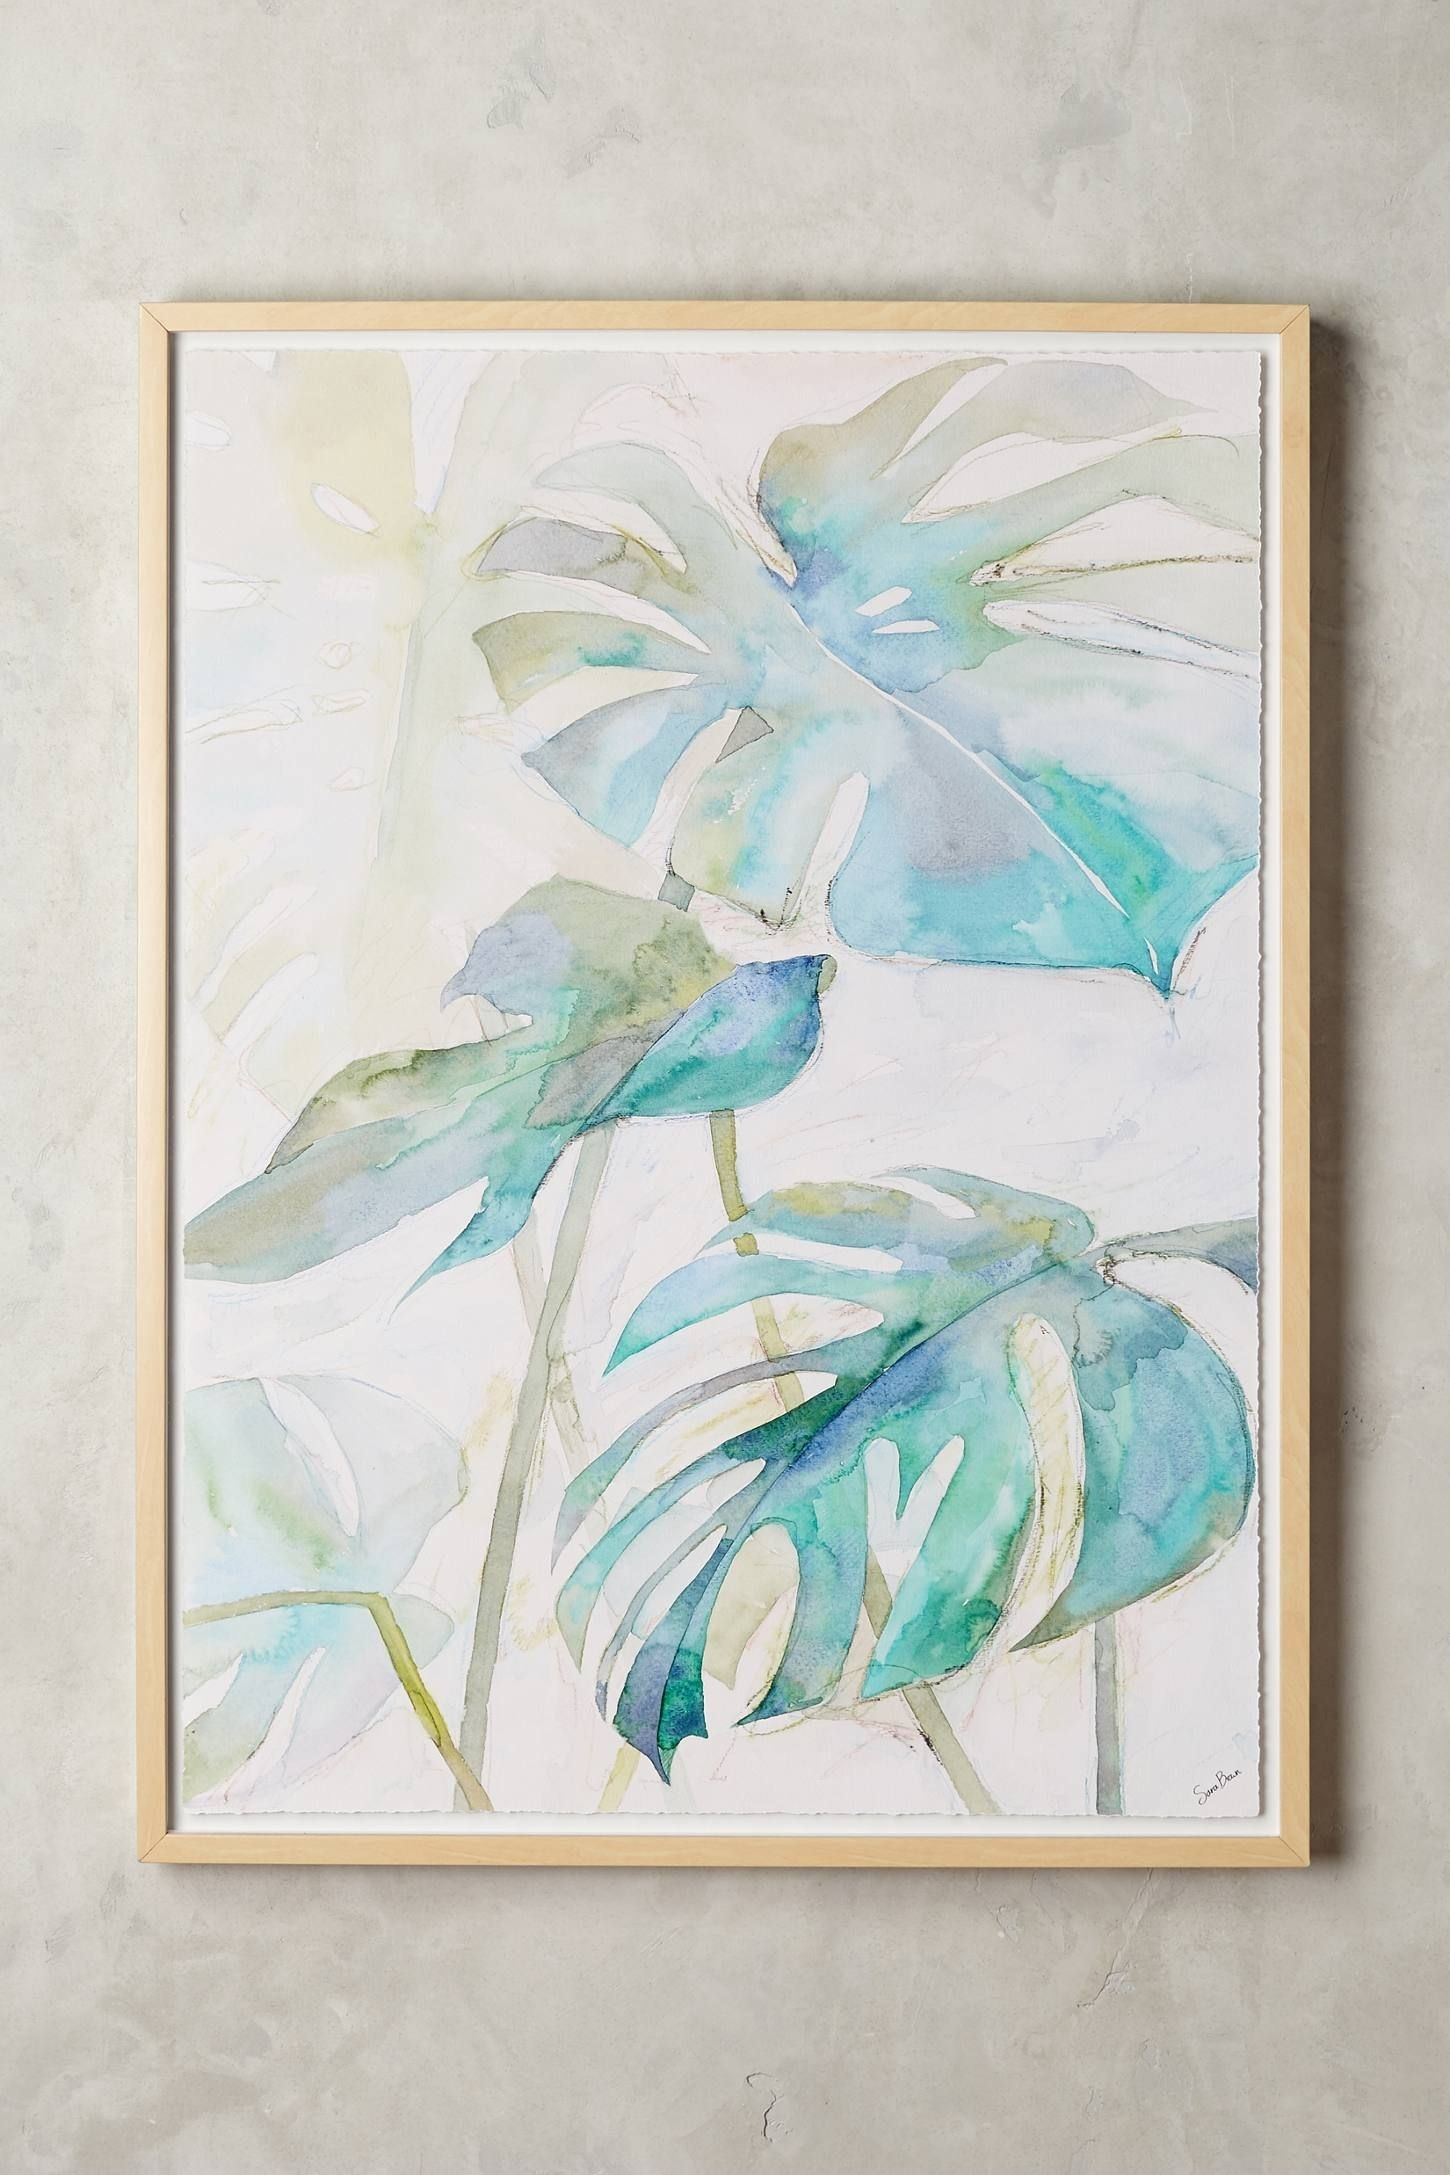 Tropicales Wall Art | Pinterest | Walls, Watercolor And Artwork Pertaining To Most Up To Date Anthropologie Wall Art (View 11 of 20)